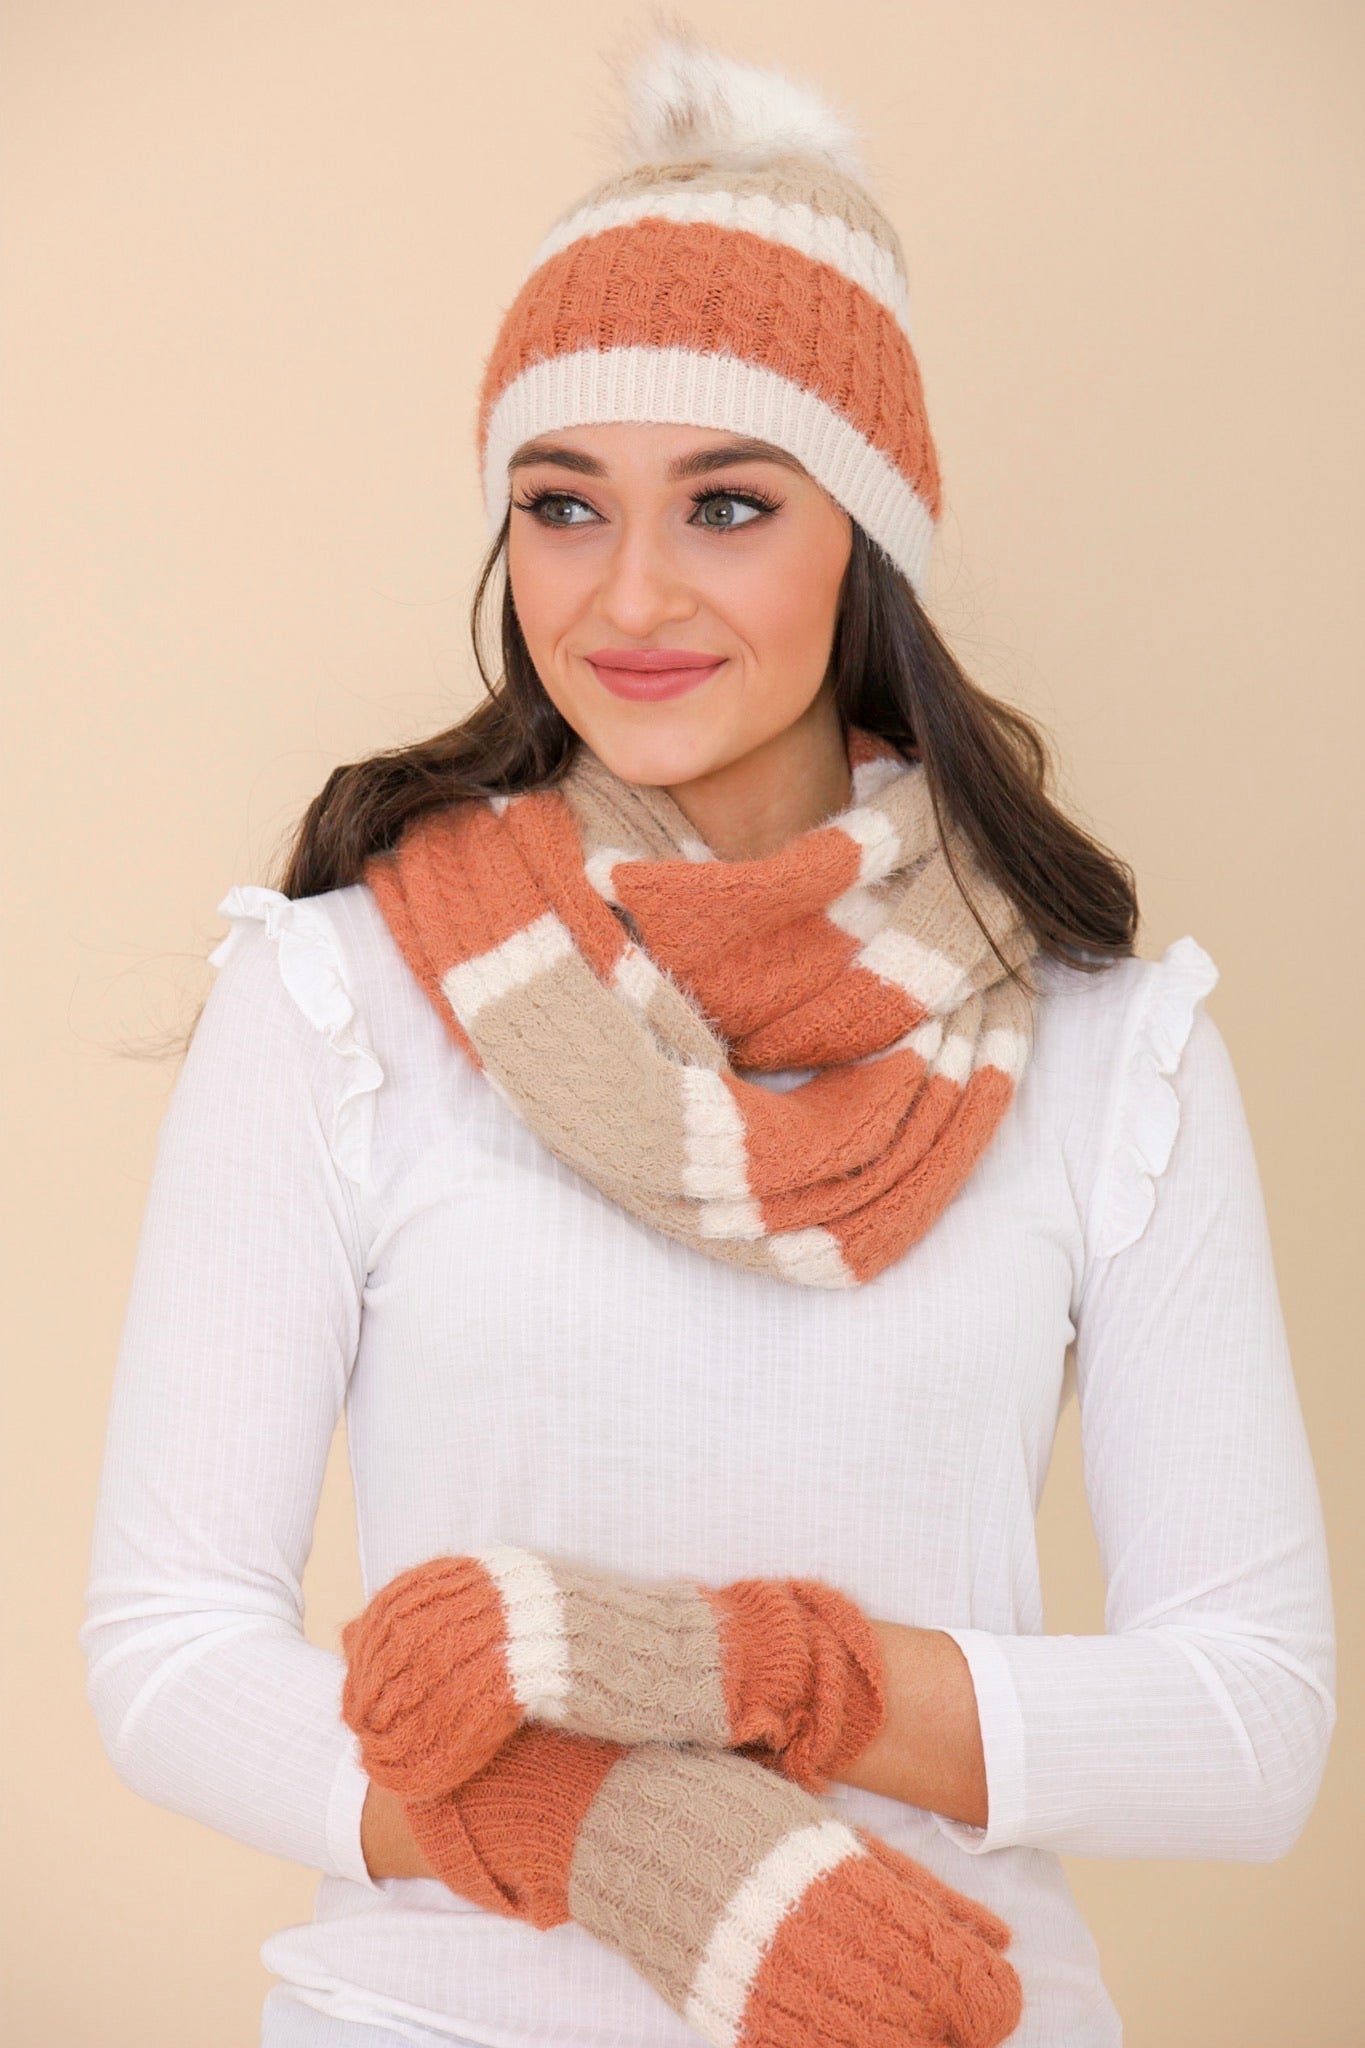 Chase Away the Cold Mohair Striped Infinity Scarf - Scarf - Wight Elephant Boutique